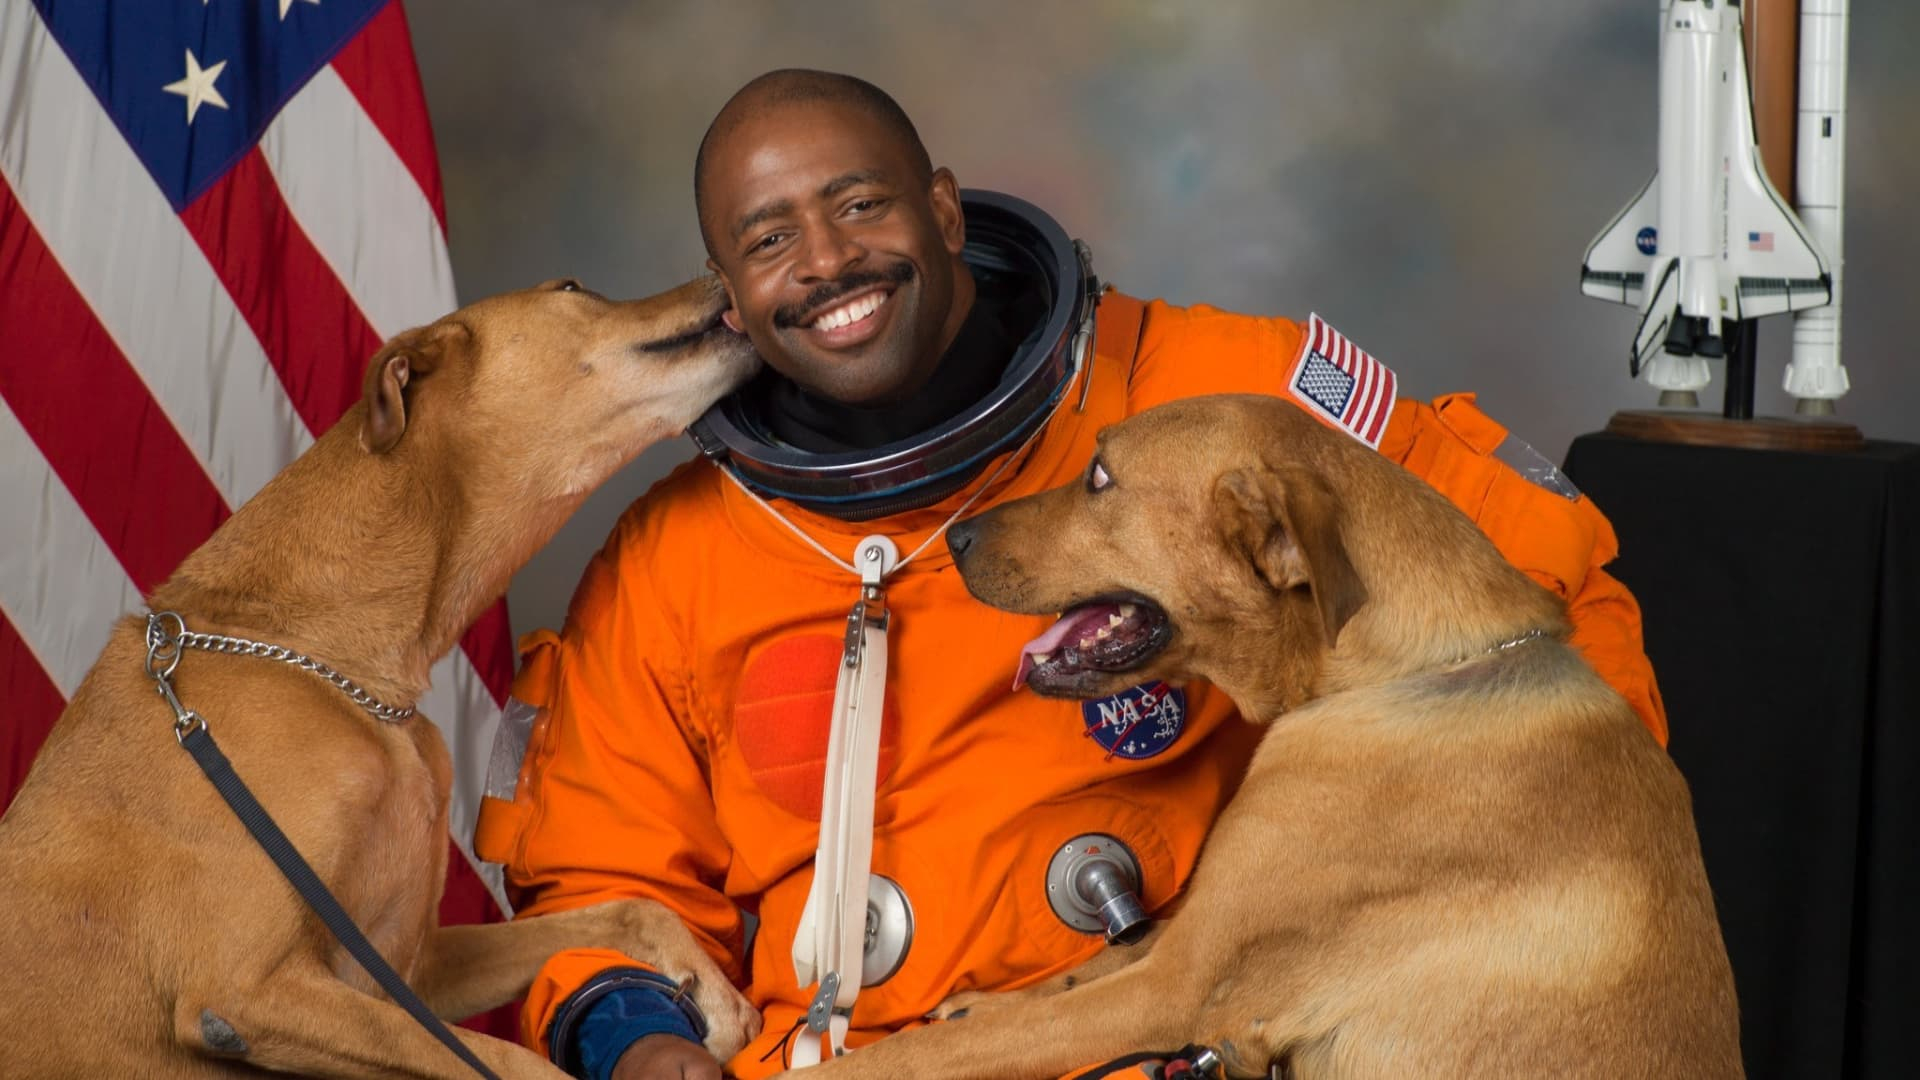 NASA astronaut Leland Melvin poses with his dogs, Jake and Scout, for an official portrait that later went viral.